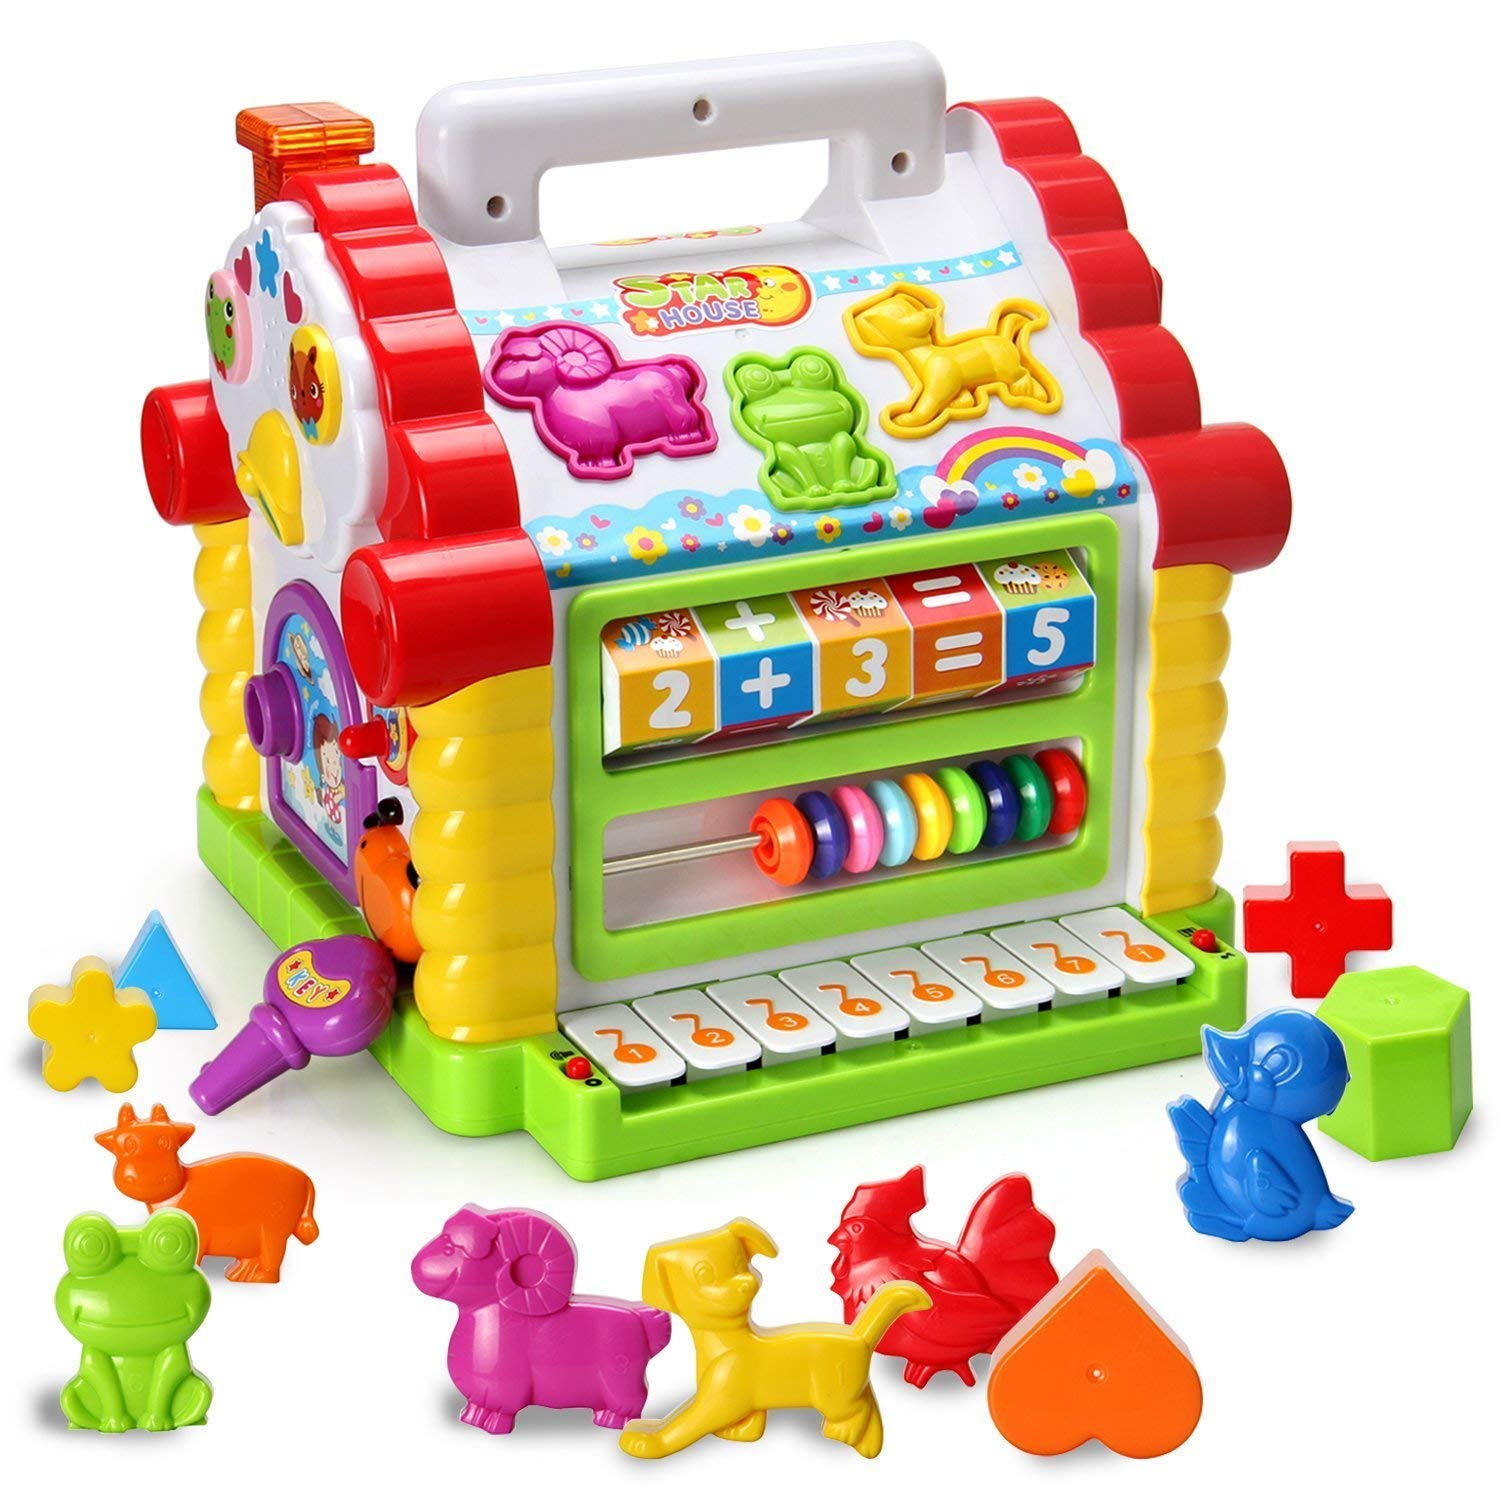 5af10508c87c Get Quotations · HOMOFY Baby Toys Colorful Musical Baby Little Fun House  Lights   Music